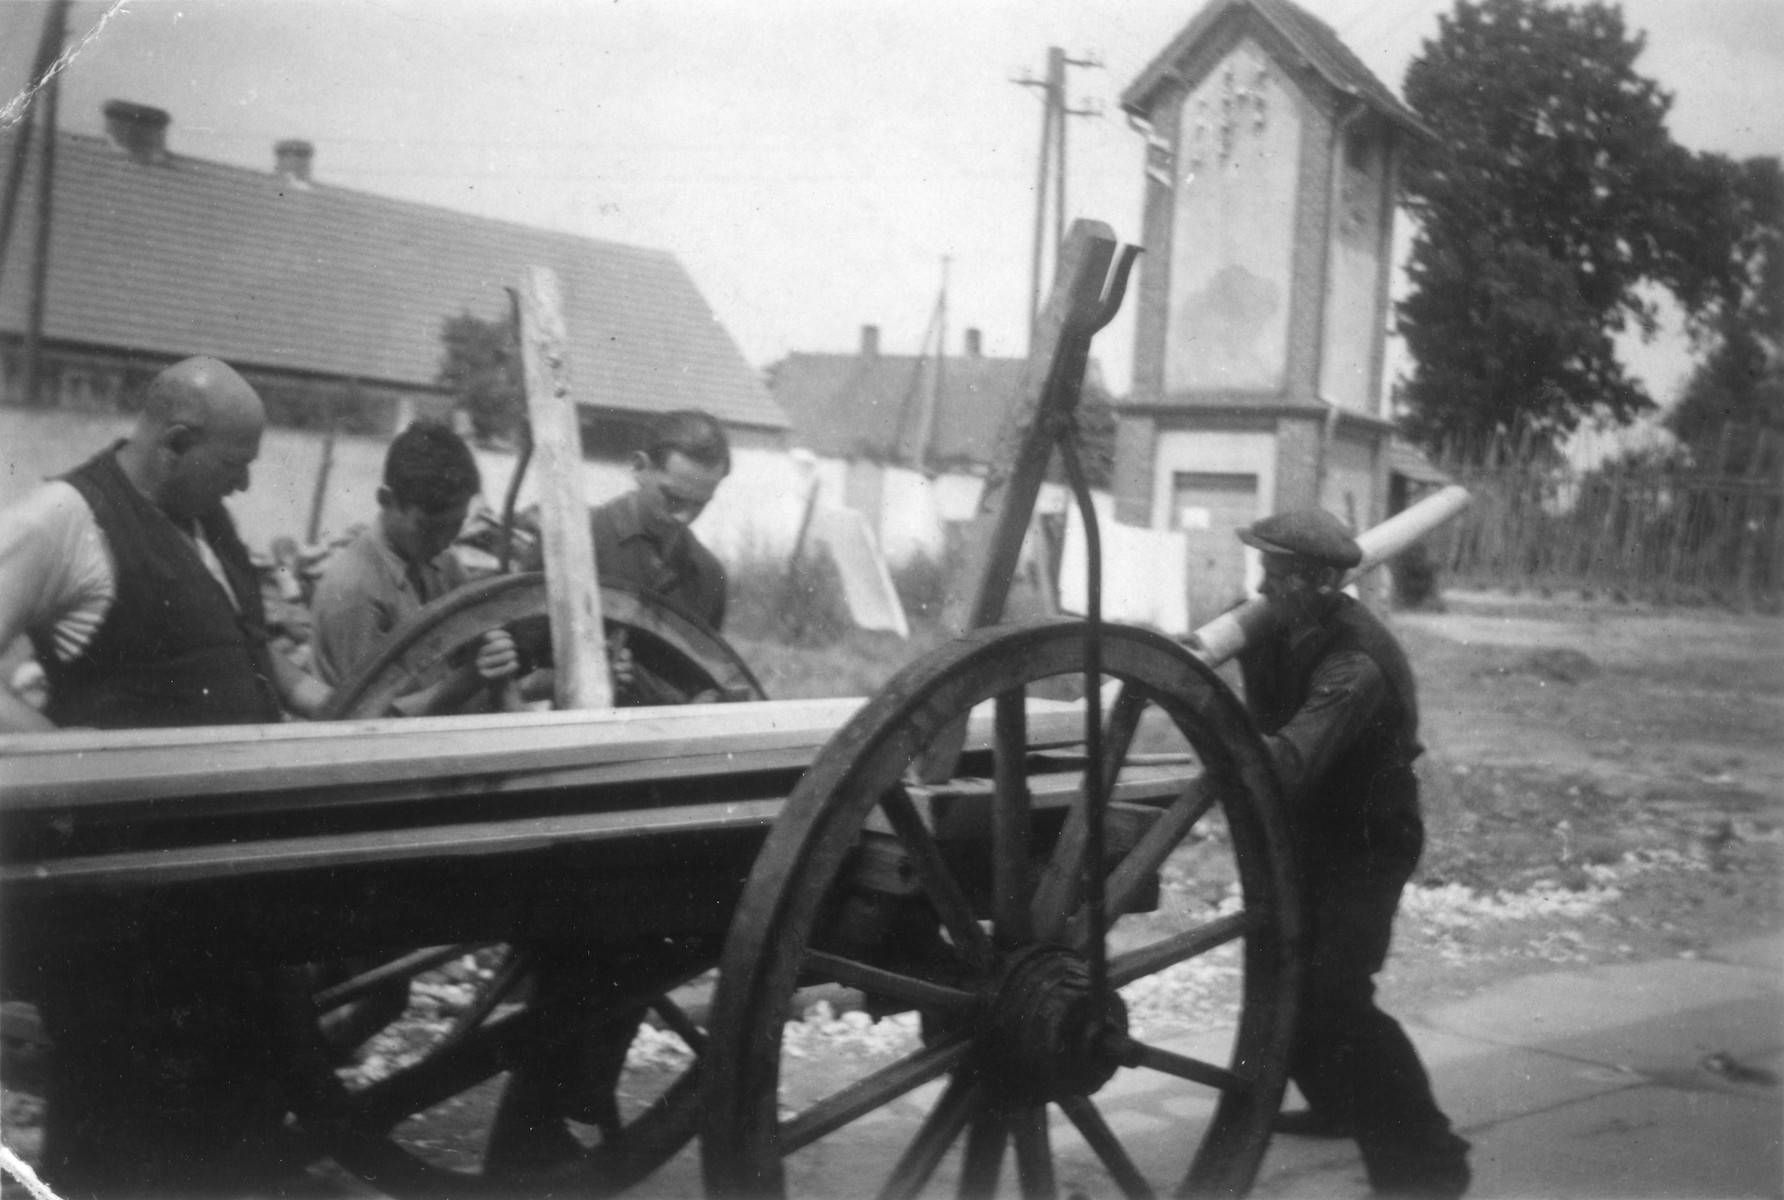 German Jewish youth learn agricultural skills in a training farm outside of Breslau.  From left to right are the carpenter Kiwi, Peter Rosenthal, Rotschild, and a non-Jewish blacksmith.